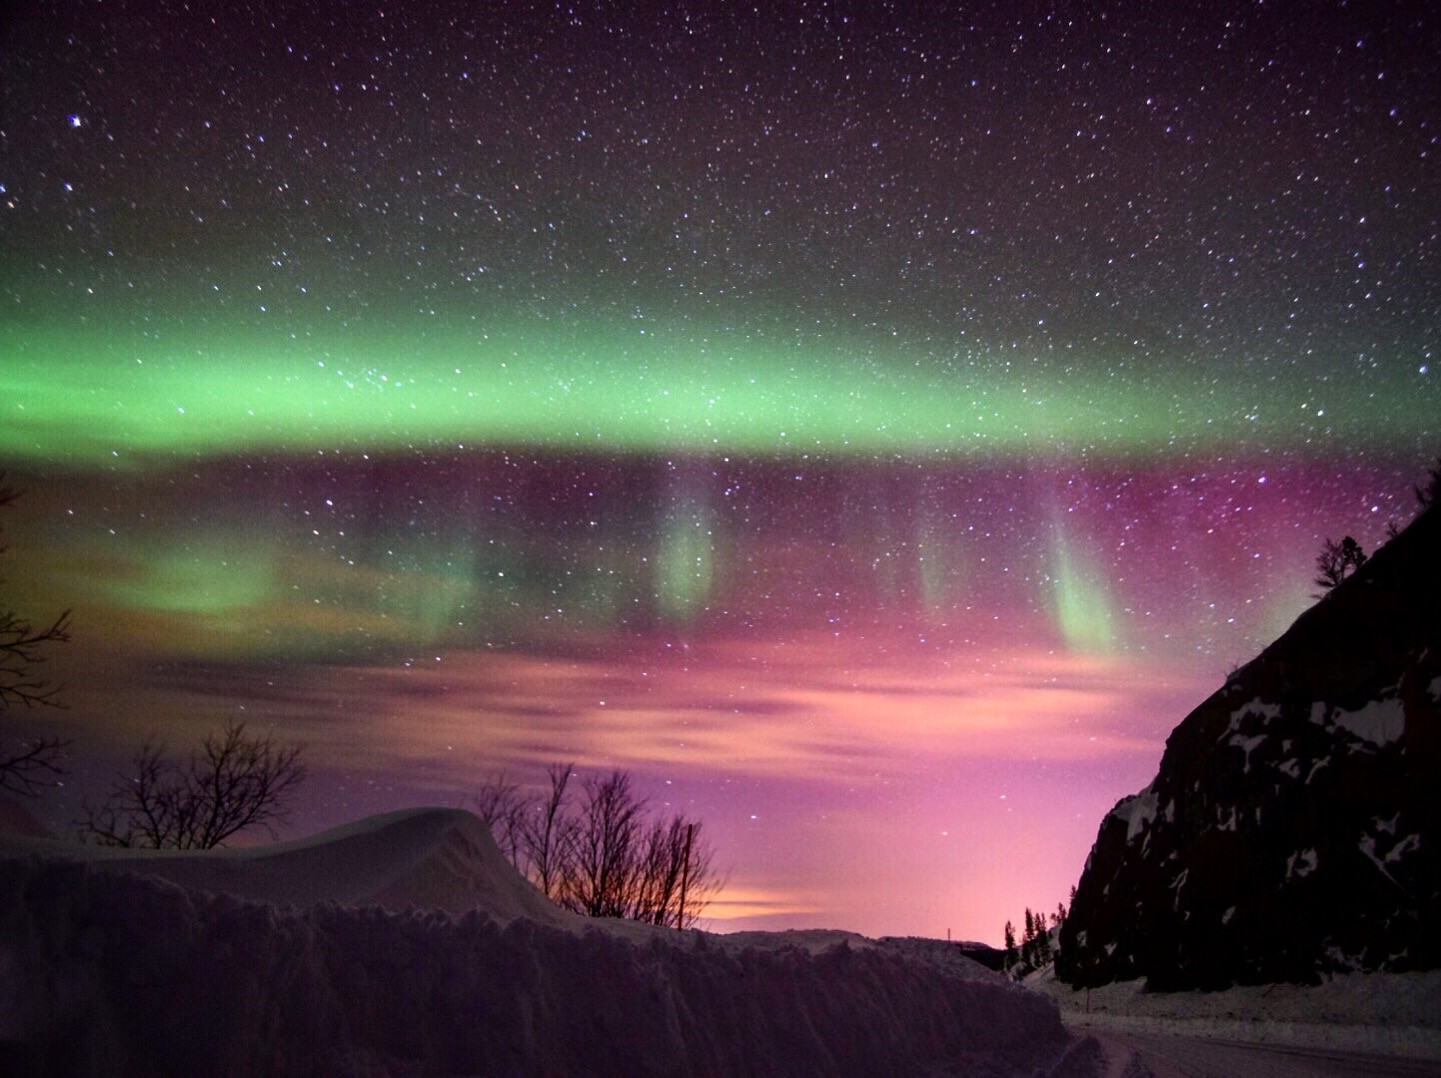 Brilliant aurora display over Kirkenes, Norway - photo: Jay Cole